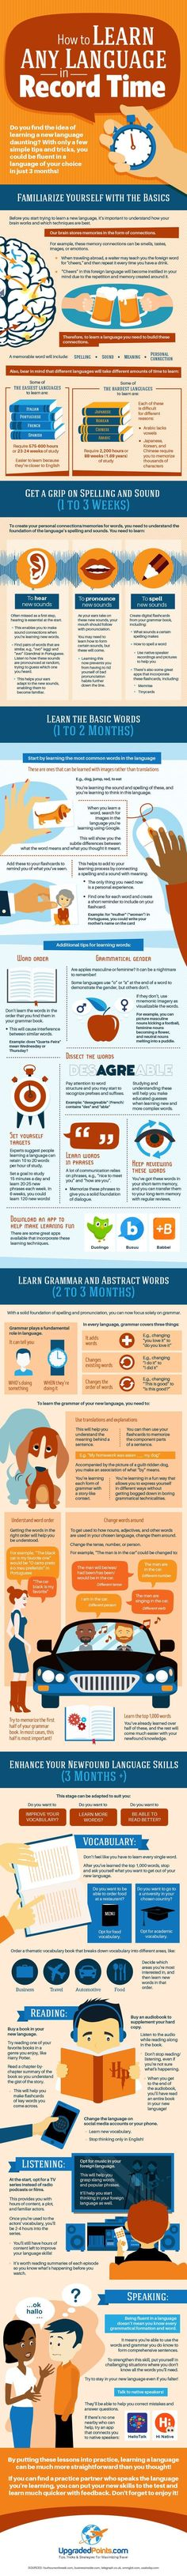 How To Learn Any Language In Record Time Infographic - http://elearninginfographics.com/learn-any-language-in-record-time-infographic/ #spanishinfographic